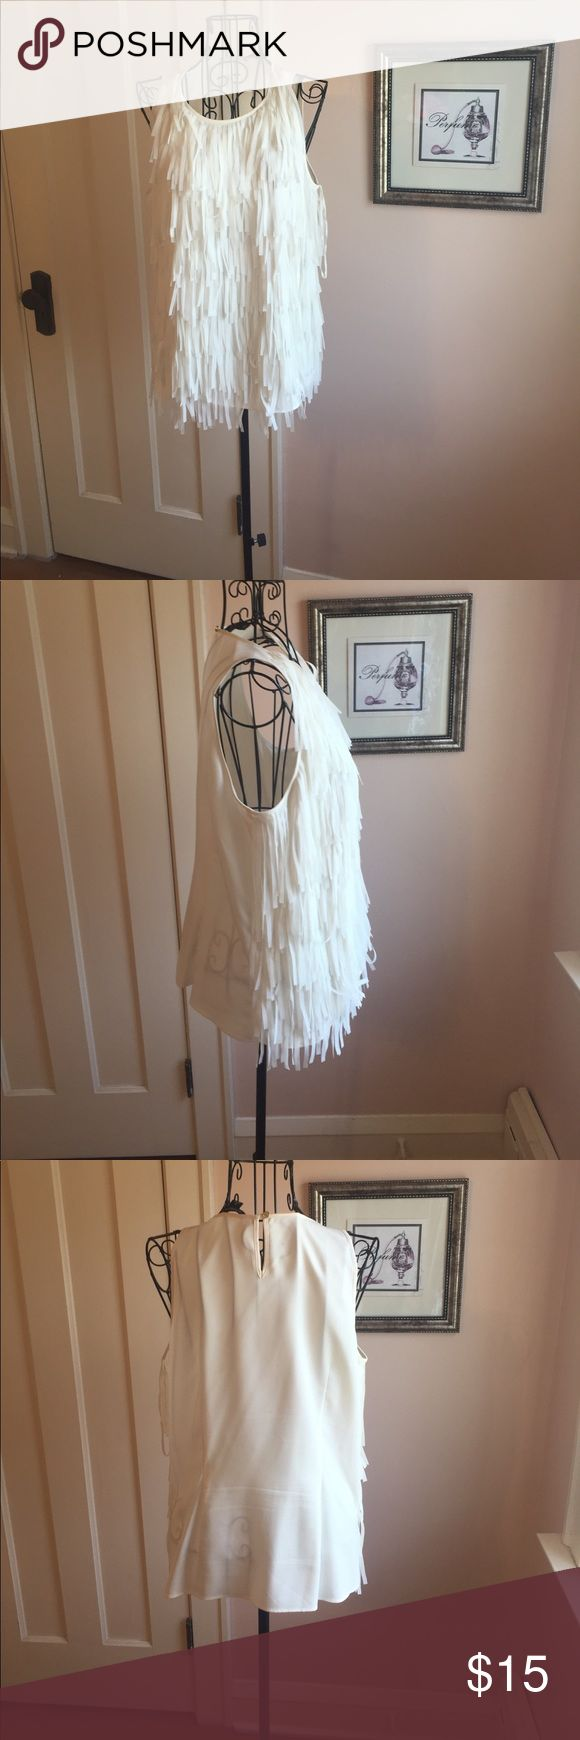 👚Ann Taylor Sleeveless Fringe Blouse NWOT This blouse has never been worn. The front is fully lined.      ⭐️⭐️⭐️⭐️⭐️ Five Star Rating 📫 Fast Shipper 🚭 Smoke Free Home 🚫 No Trades Ann Taylor Tops Blouses